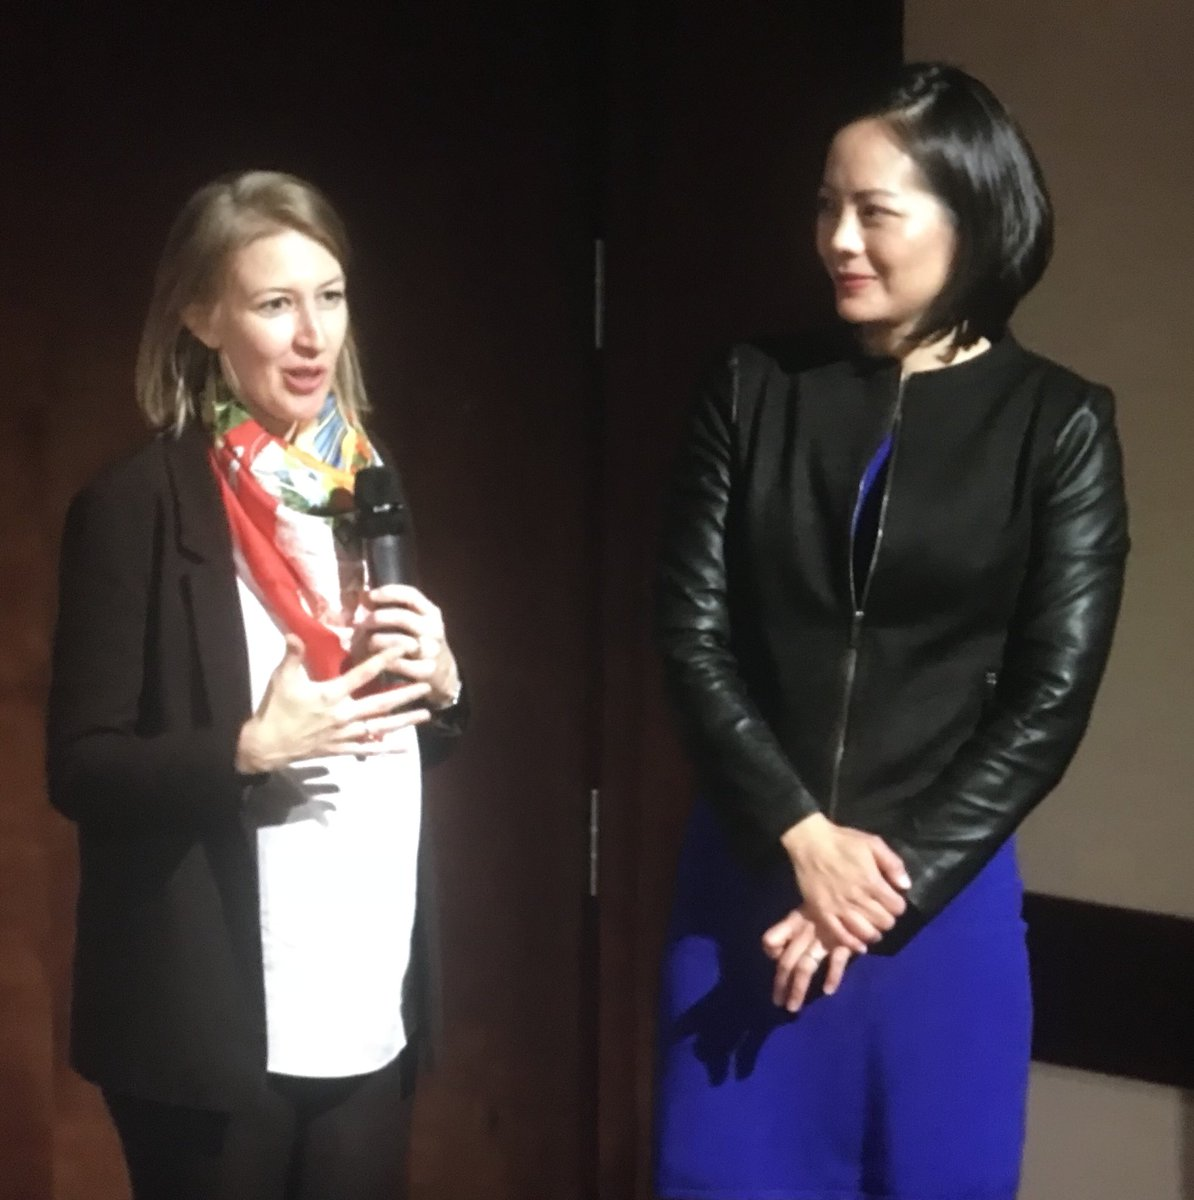 We watched, listened &amp; loved the program. Bravo, everyone! Special shoutout to #VanBiennale artist alumna @vivian_fung! #NewMusic<br>http://pic.twitter.com/6h0DherNs2